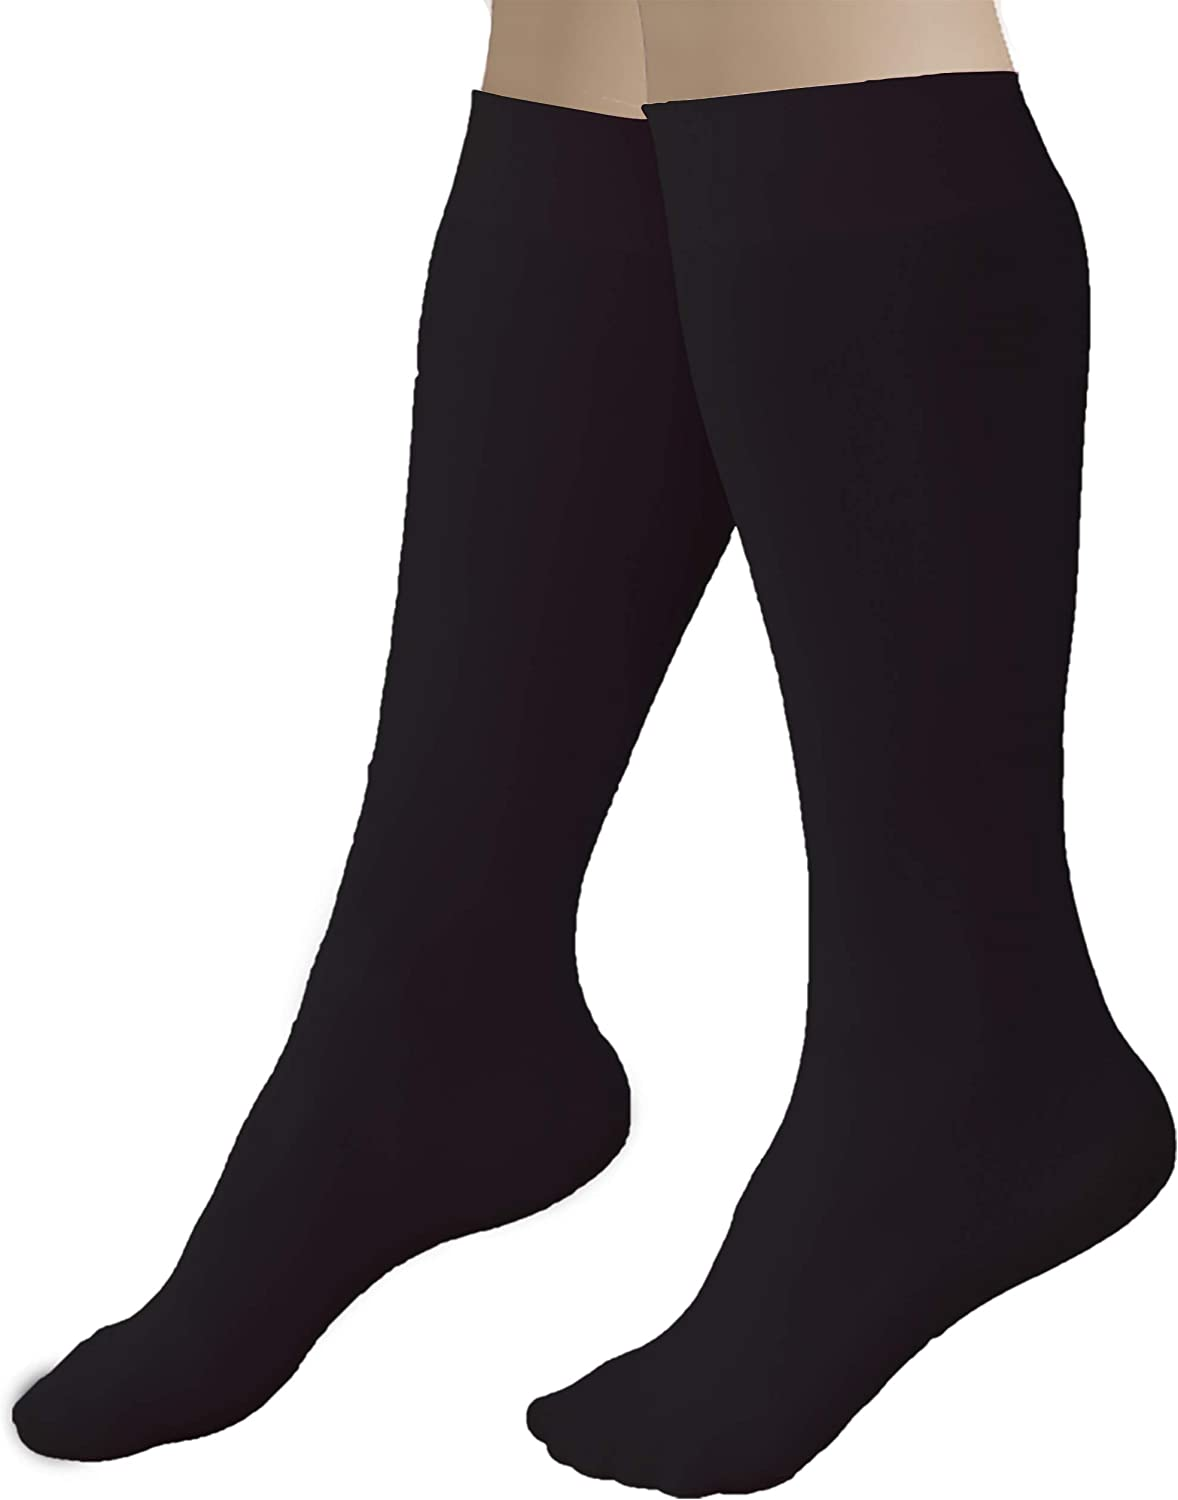 CRS Cross Figure Skating Socks (2 Pair) Knee High Tights for Ice Skates, Footed Skate Socks, Dance Tights